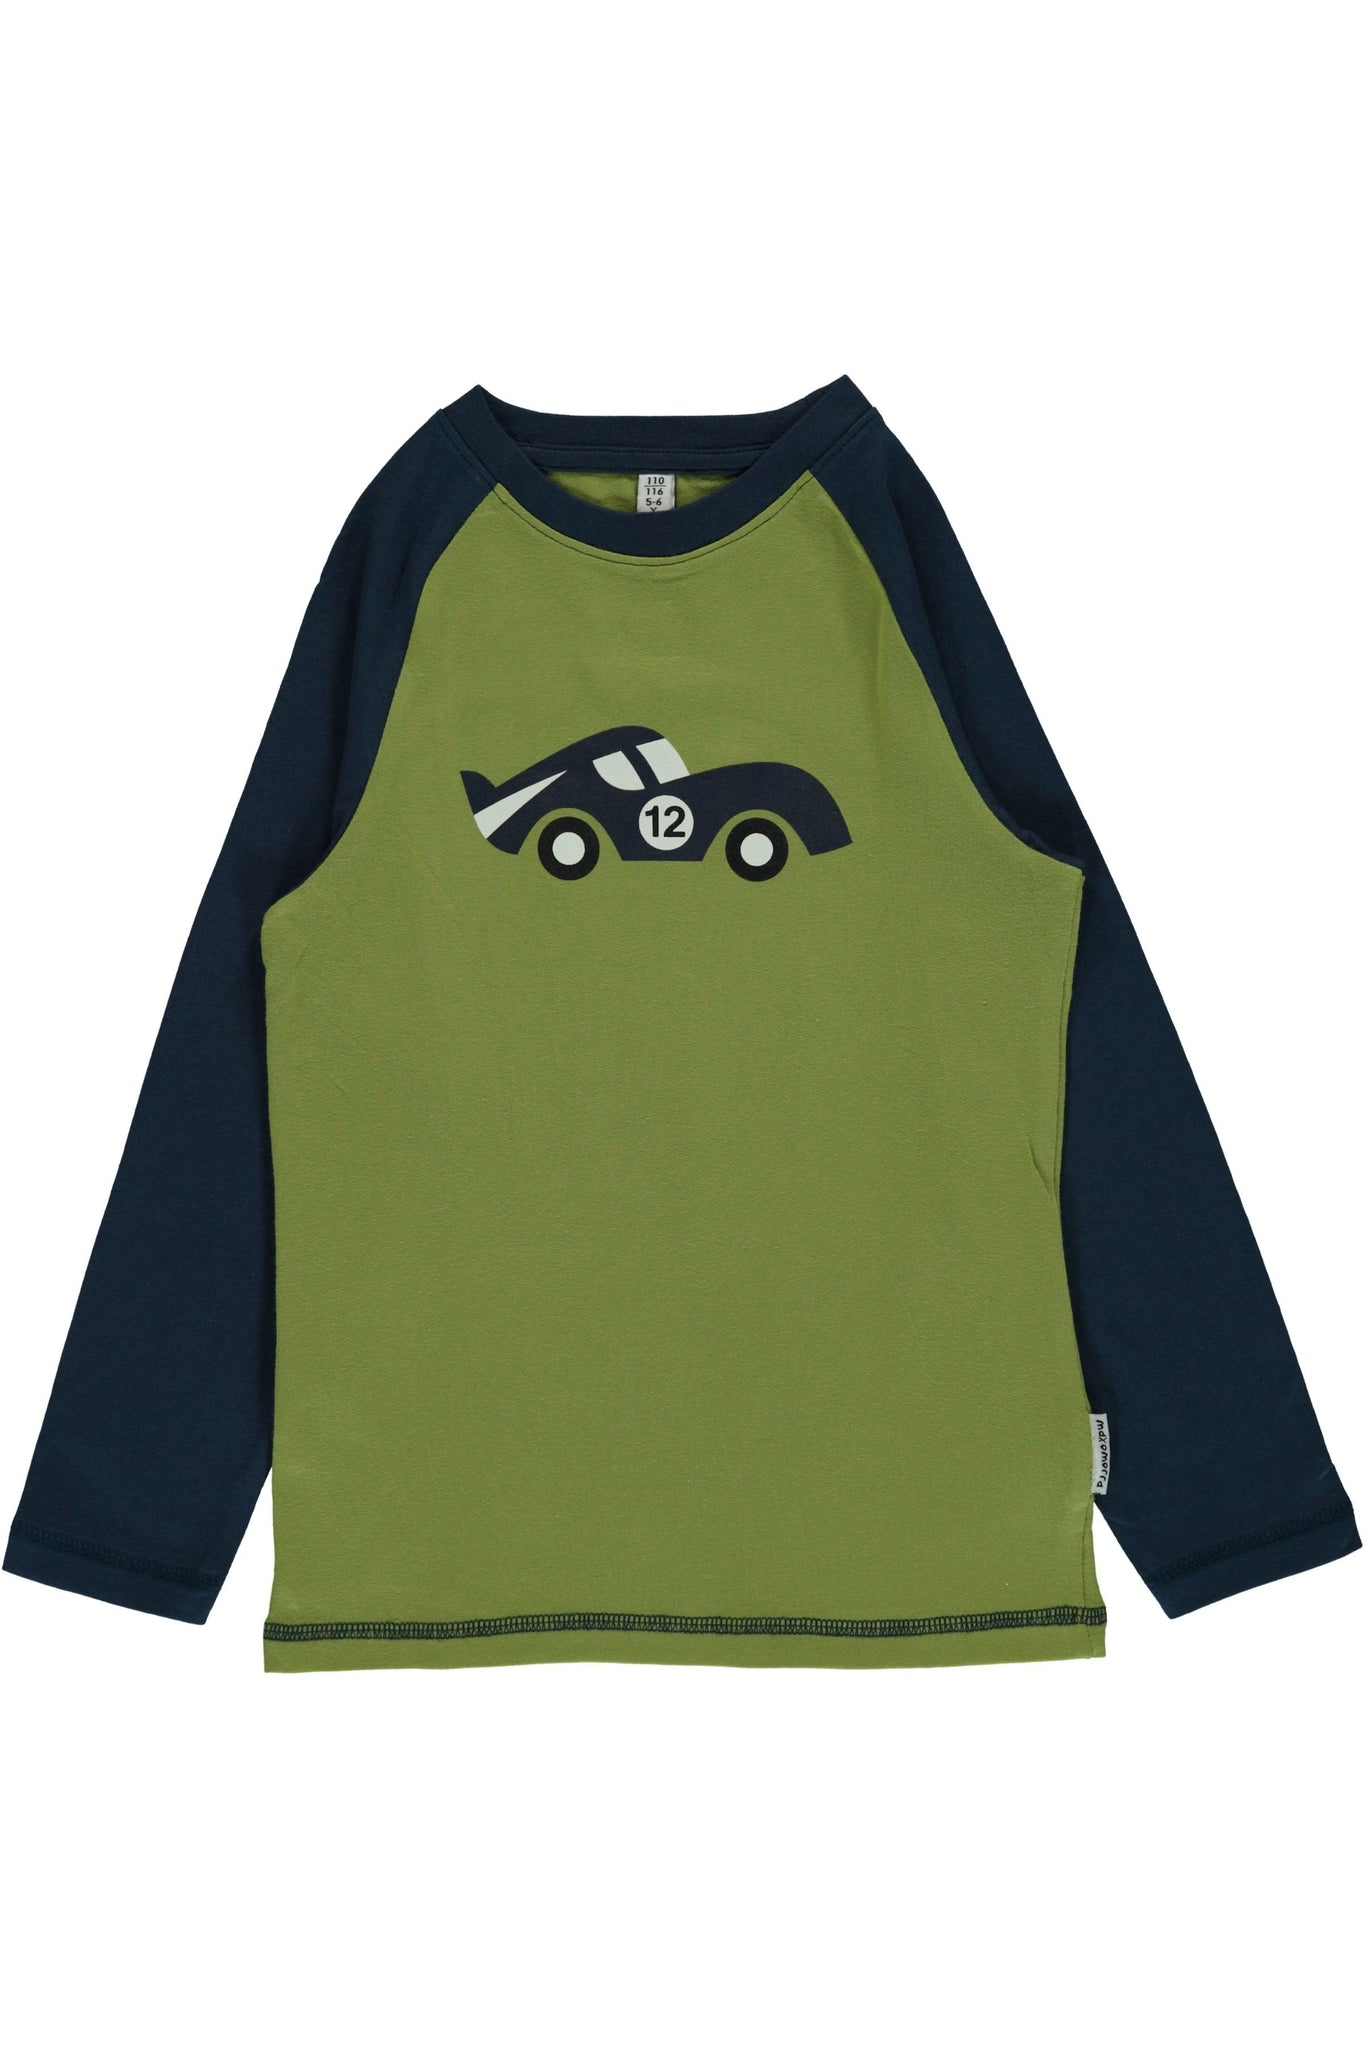 Race Cars - Long - Sleeve - Raglan Top - Maxomorra Fashion - Snugglefox